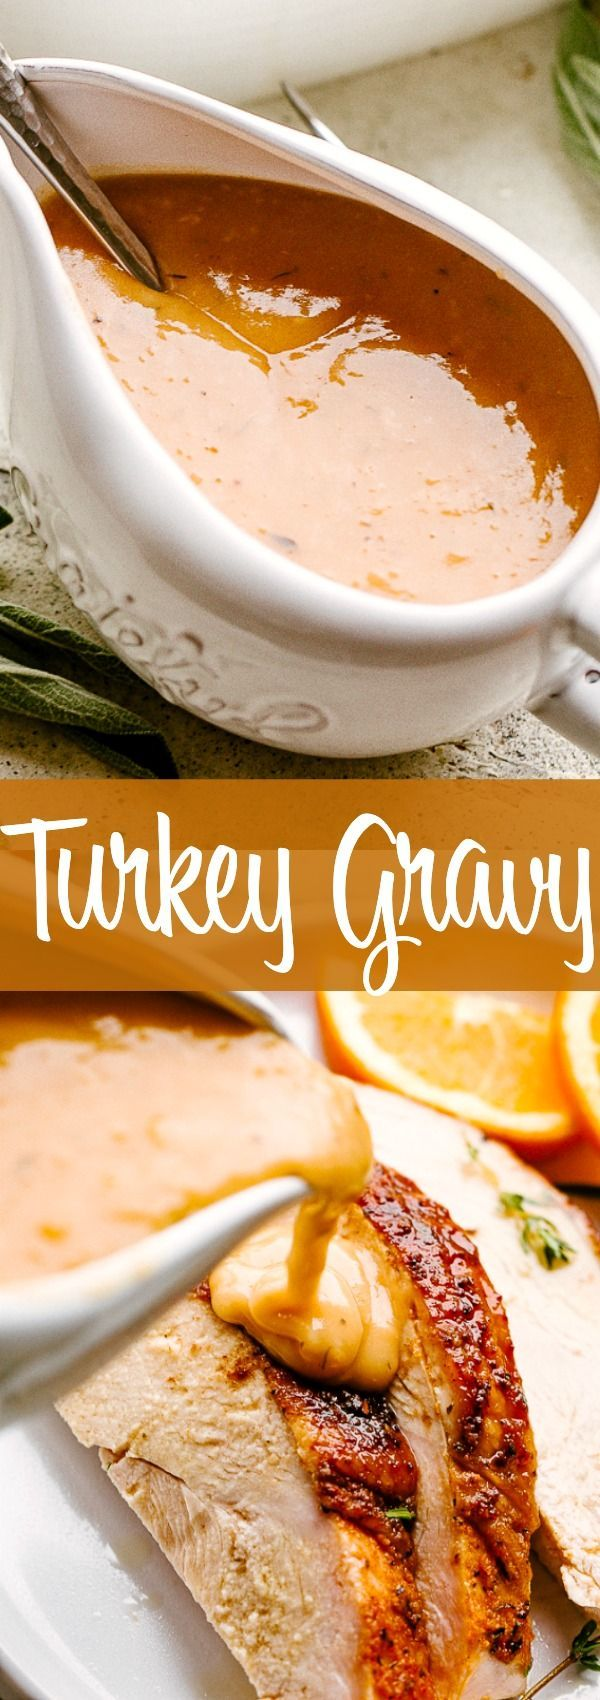 Easy Turkey Gravy Recipe with Pan Drippings | Diethood #turkeygravyfromdrippingseasy